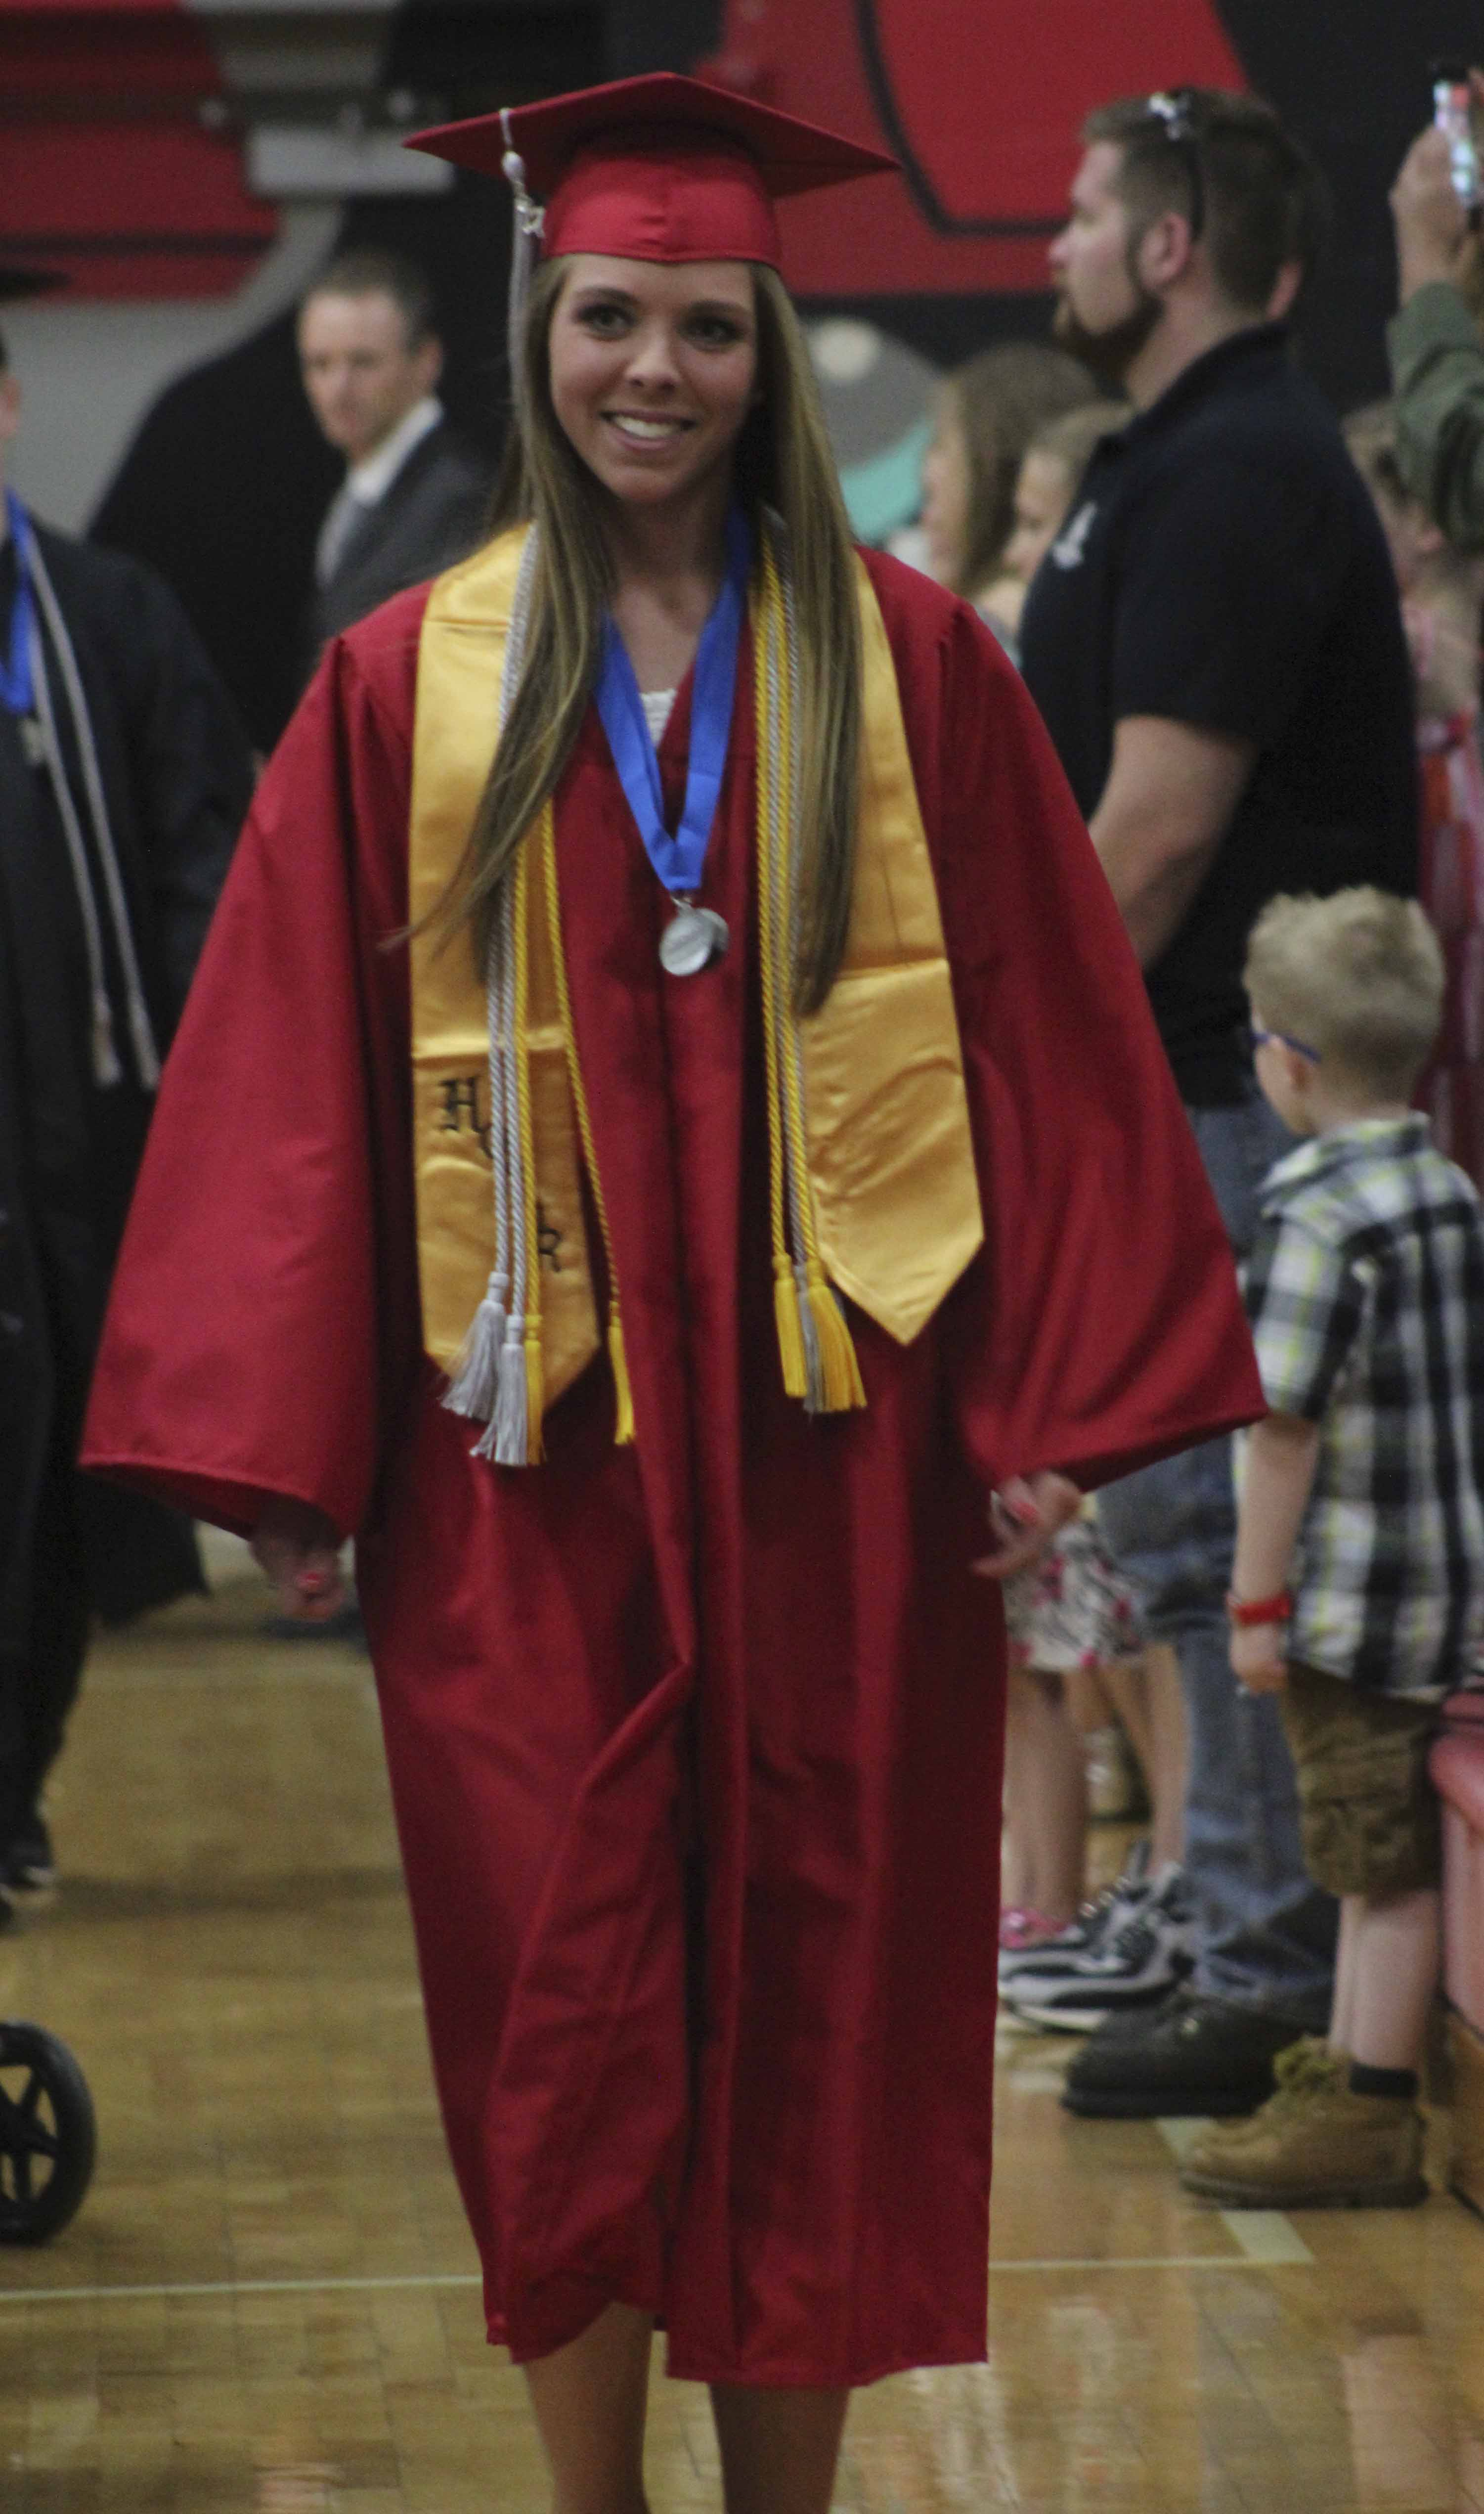 Salutatorian Jacqueline Petersen enters during the processional.